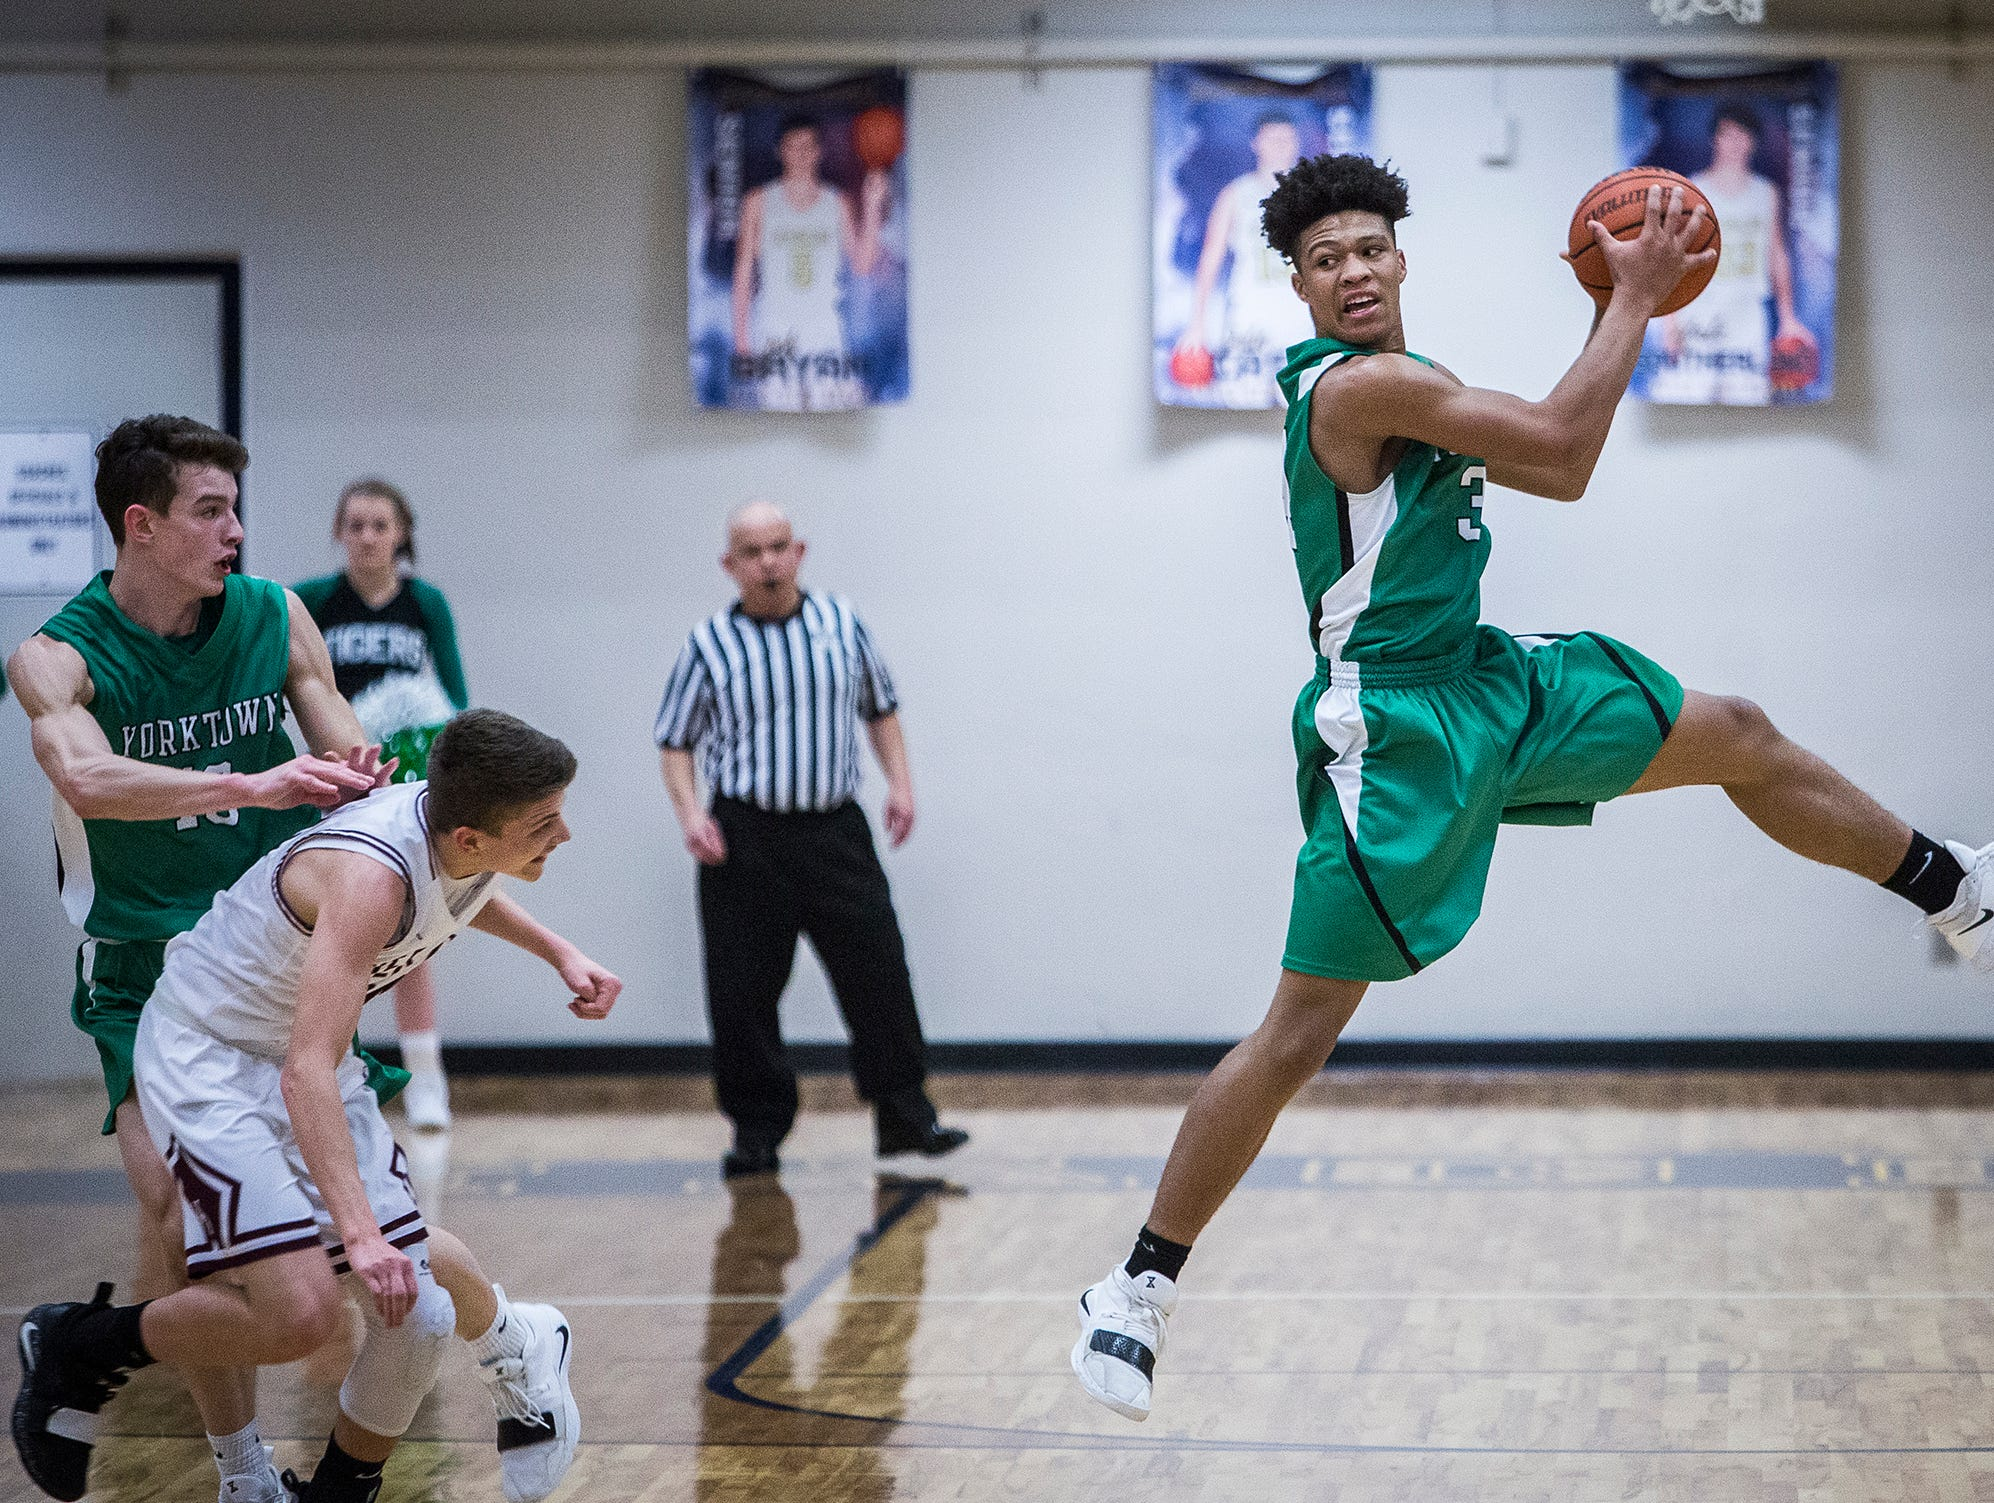 Wes-Del faces off against Yorktown during the Delaware County Basketball Tournament at Delta High School Tuesday, Jan. 8, 2019.